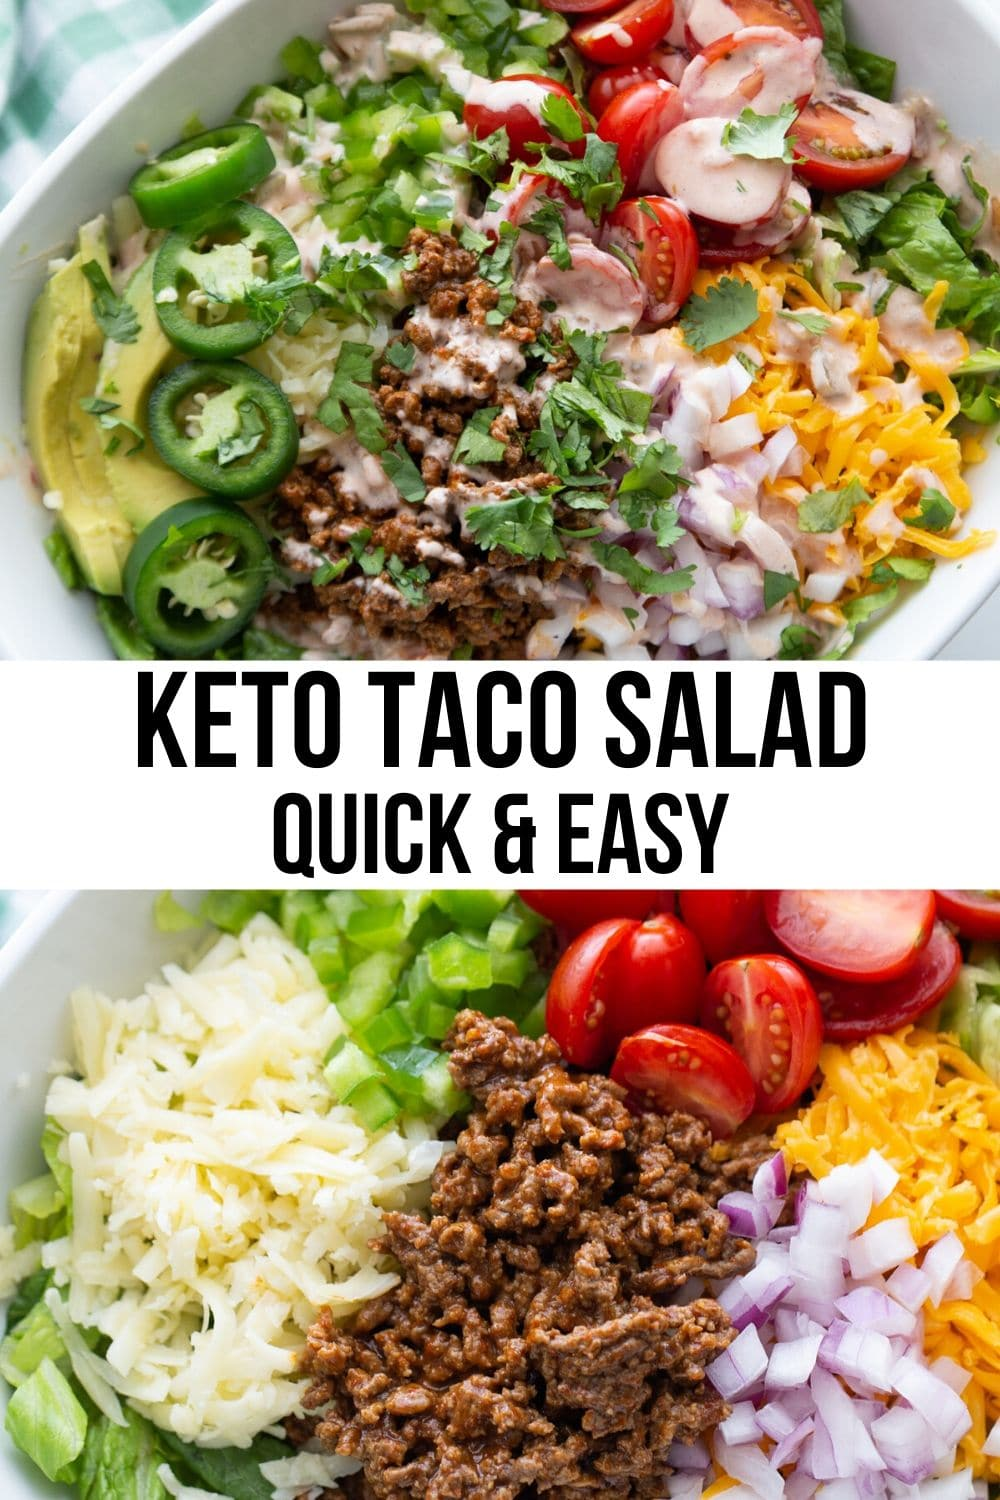 healthy gluten free taco salad with ground beef, cheese, dressing and avocados in a white bowl